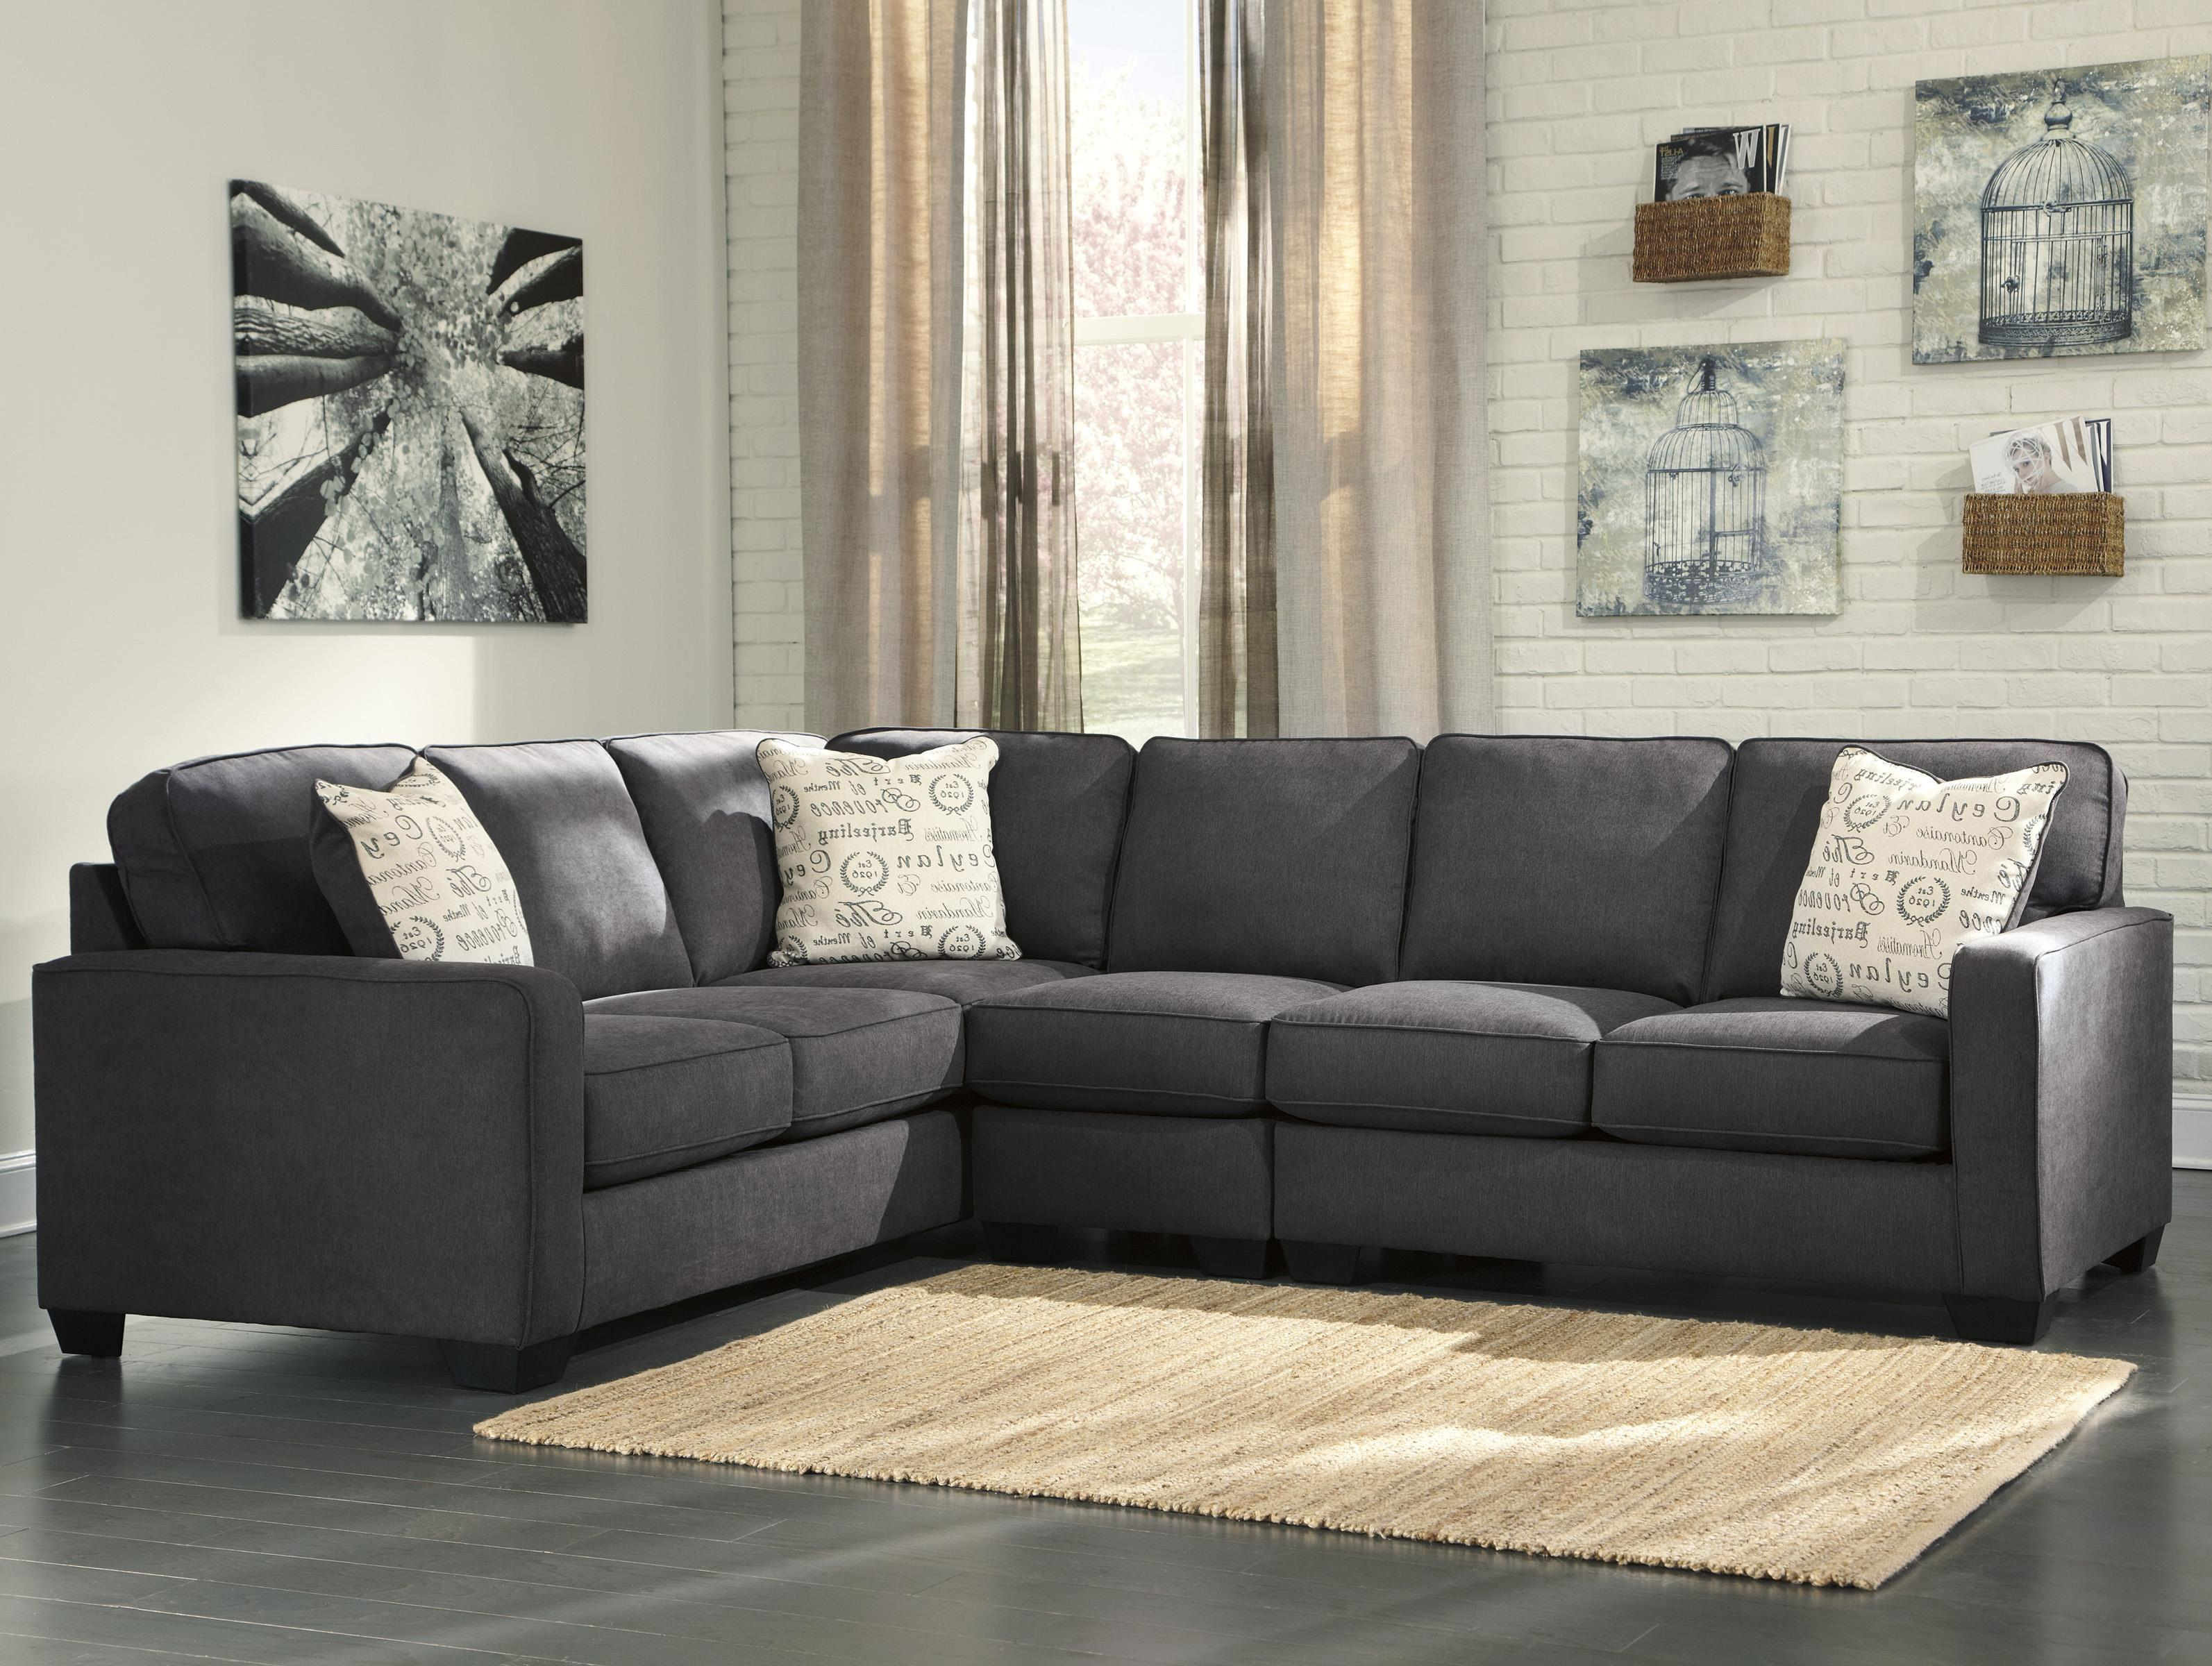 Alenya - Charcoal 3-Piece Sectional with Right Loveseat by Signature Design by Ashley at Zak's Warehouse Clearance Center